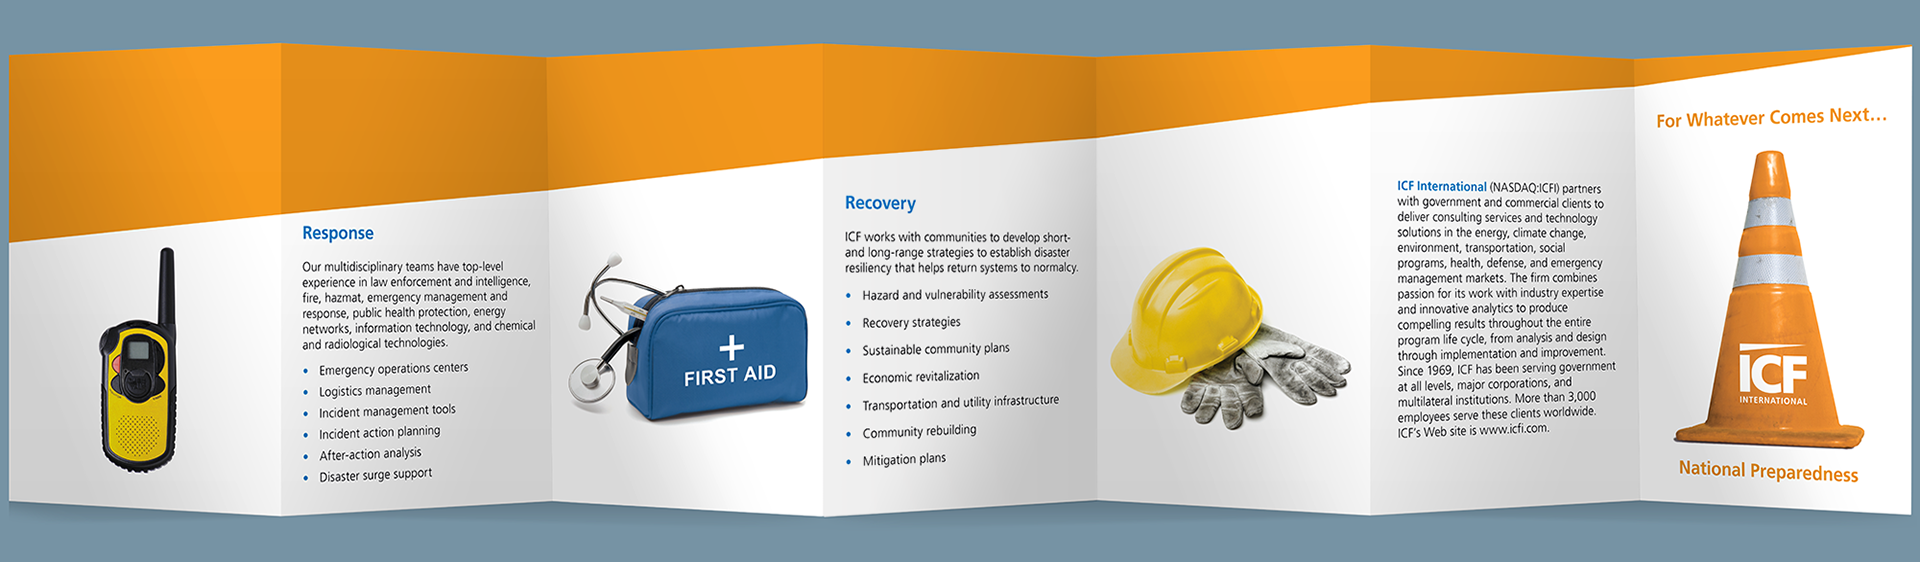 Abol bahadori icf national preparedness valet size brochure and since this was a point of service brochure to make sure that the potential clients keep the brochure we reduced it to a business card size colourmoves